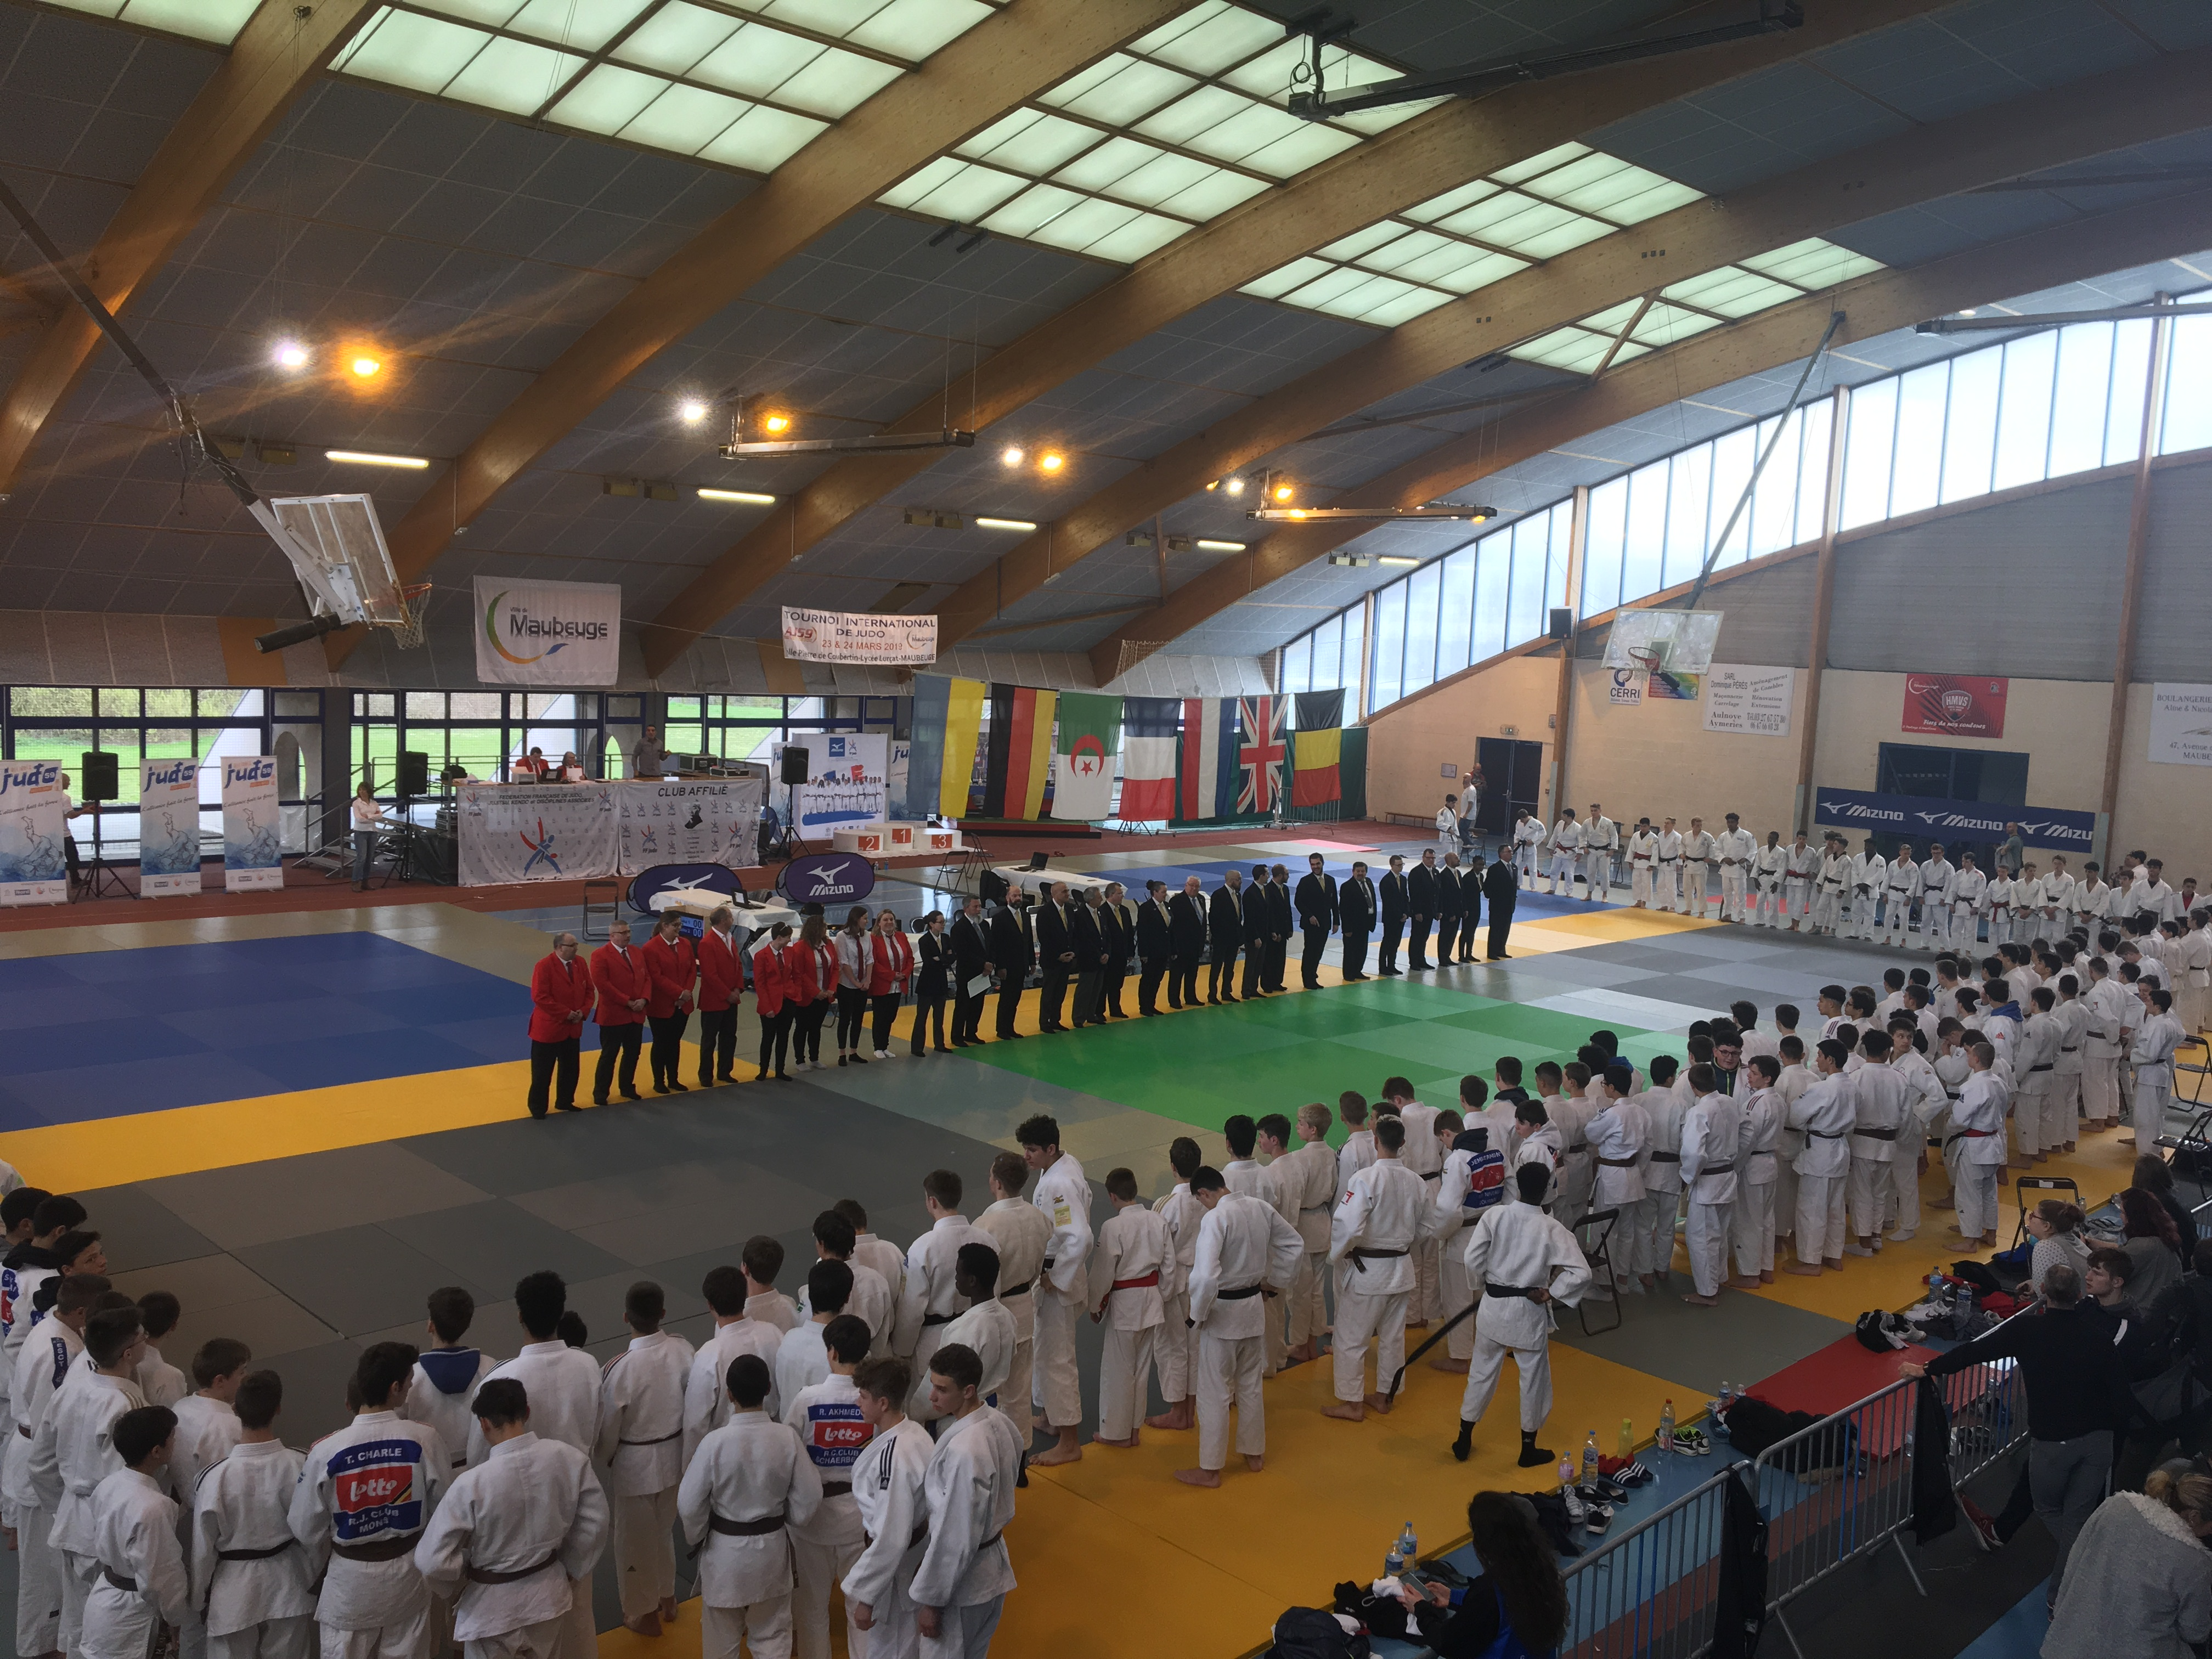 Tournoi international de Maubeuge: Belle performance de Mathis Bouchez